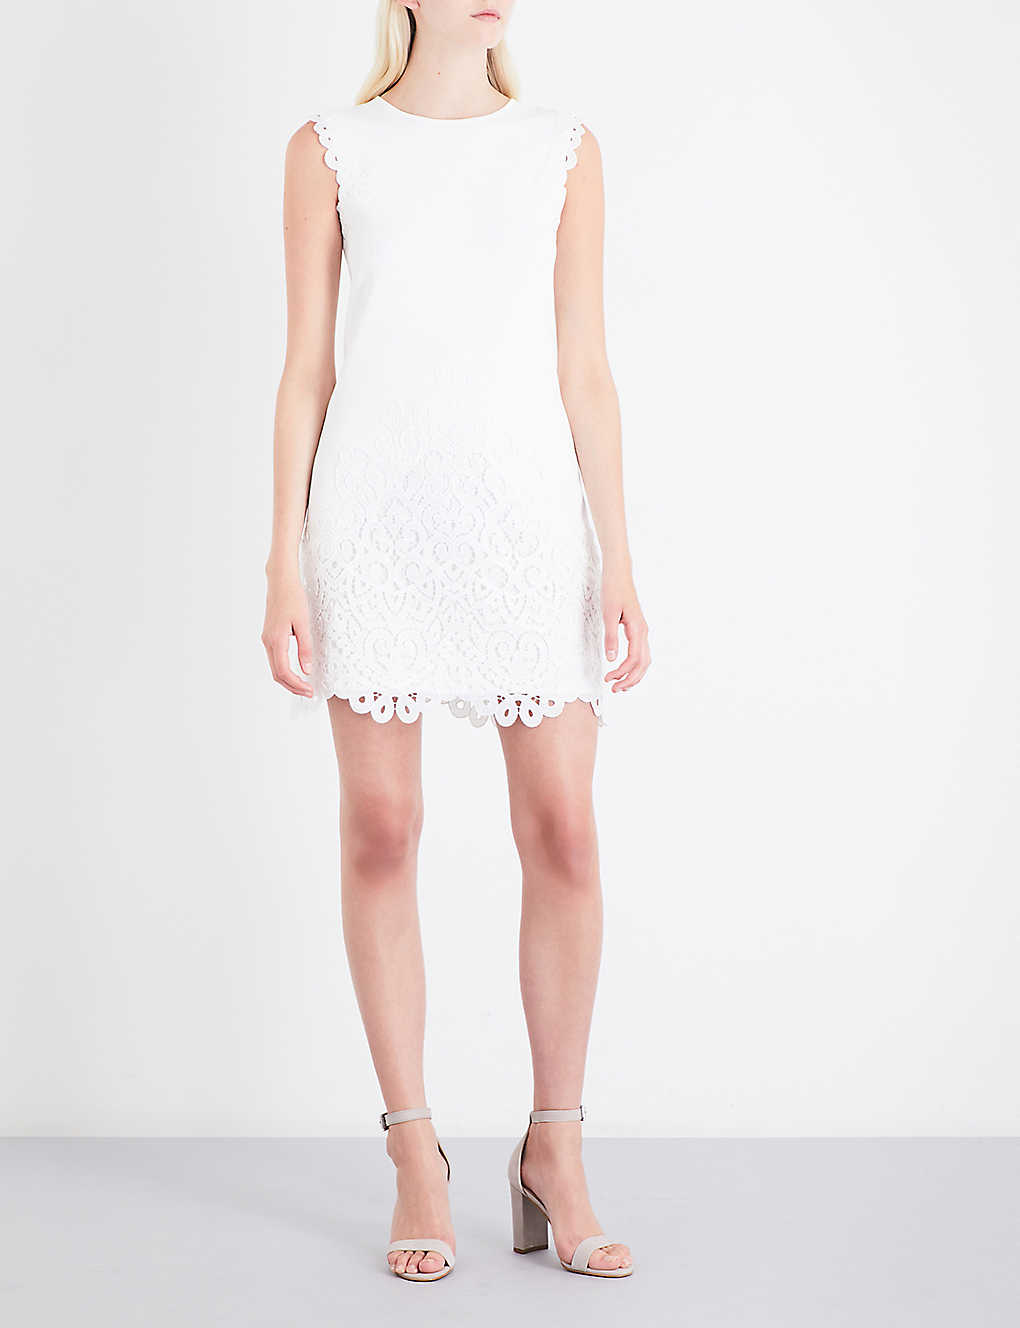 9802b2f8b8944 TED BAKER - Lace-trimmed knitted dress